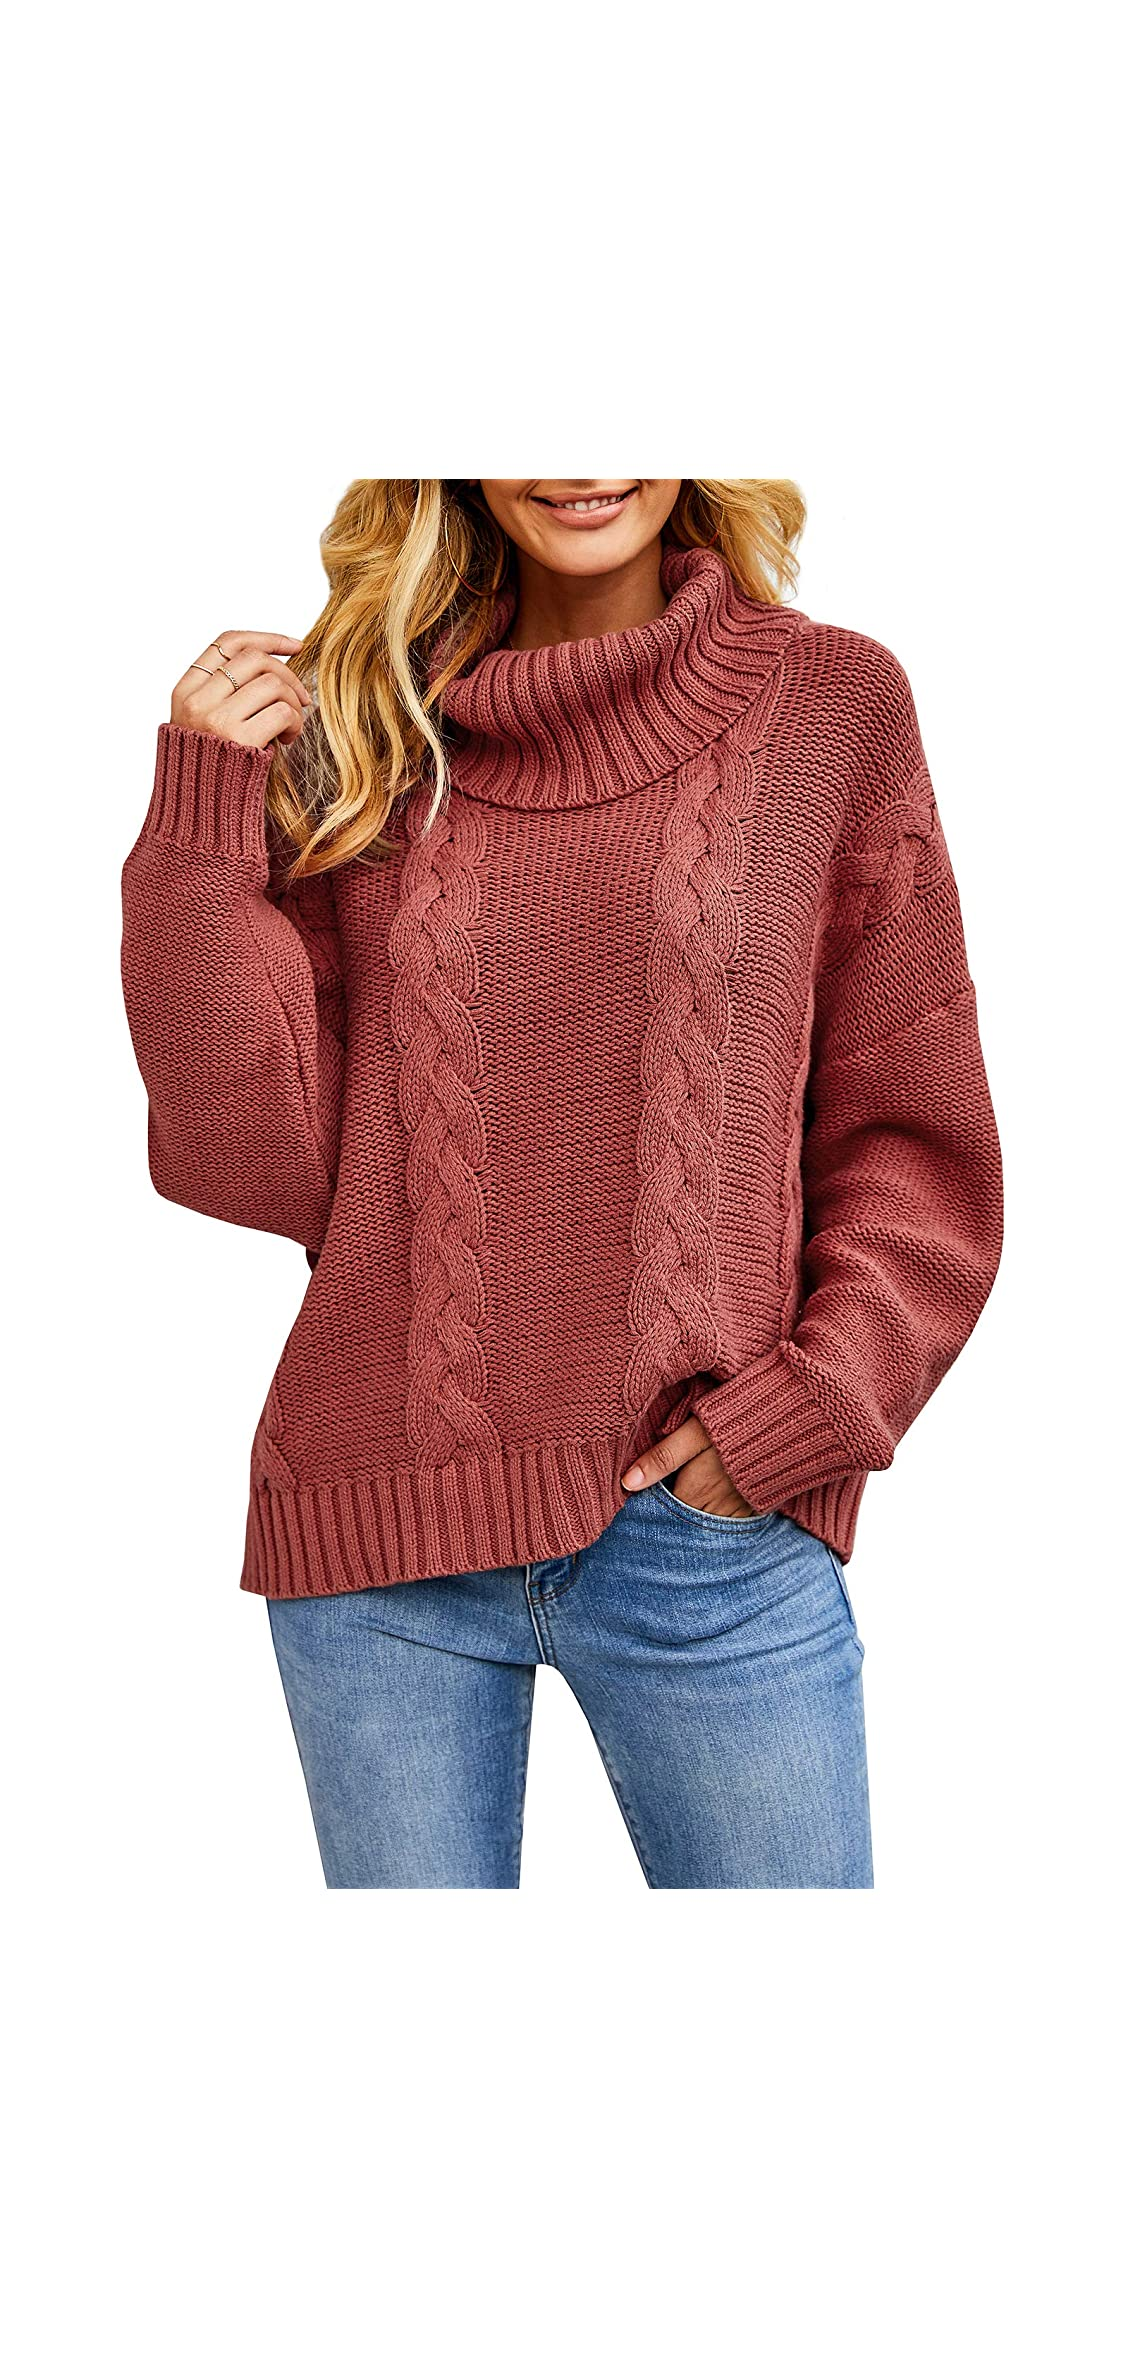 Womens Oversized Cable Knit Turtleneck Sweaters Cowl Tops